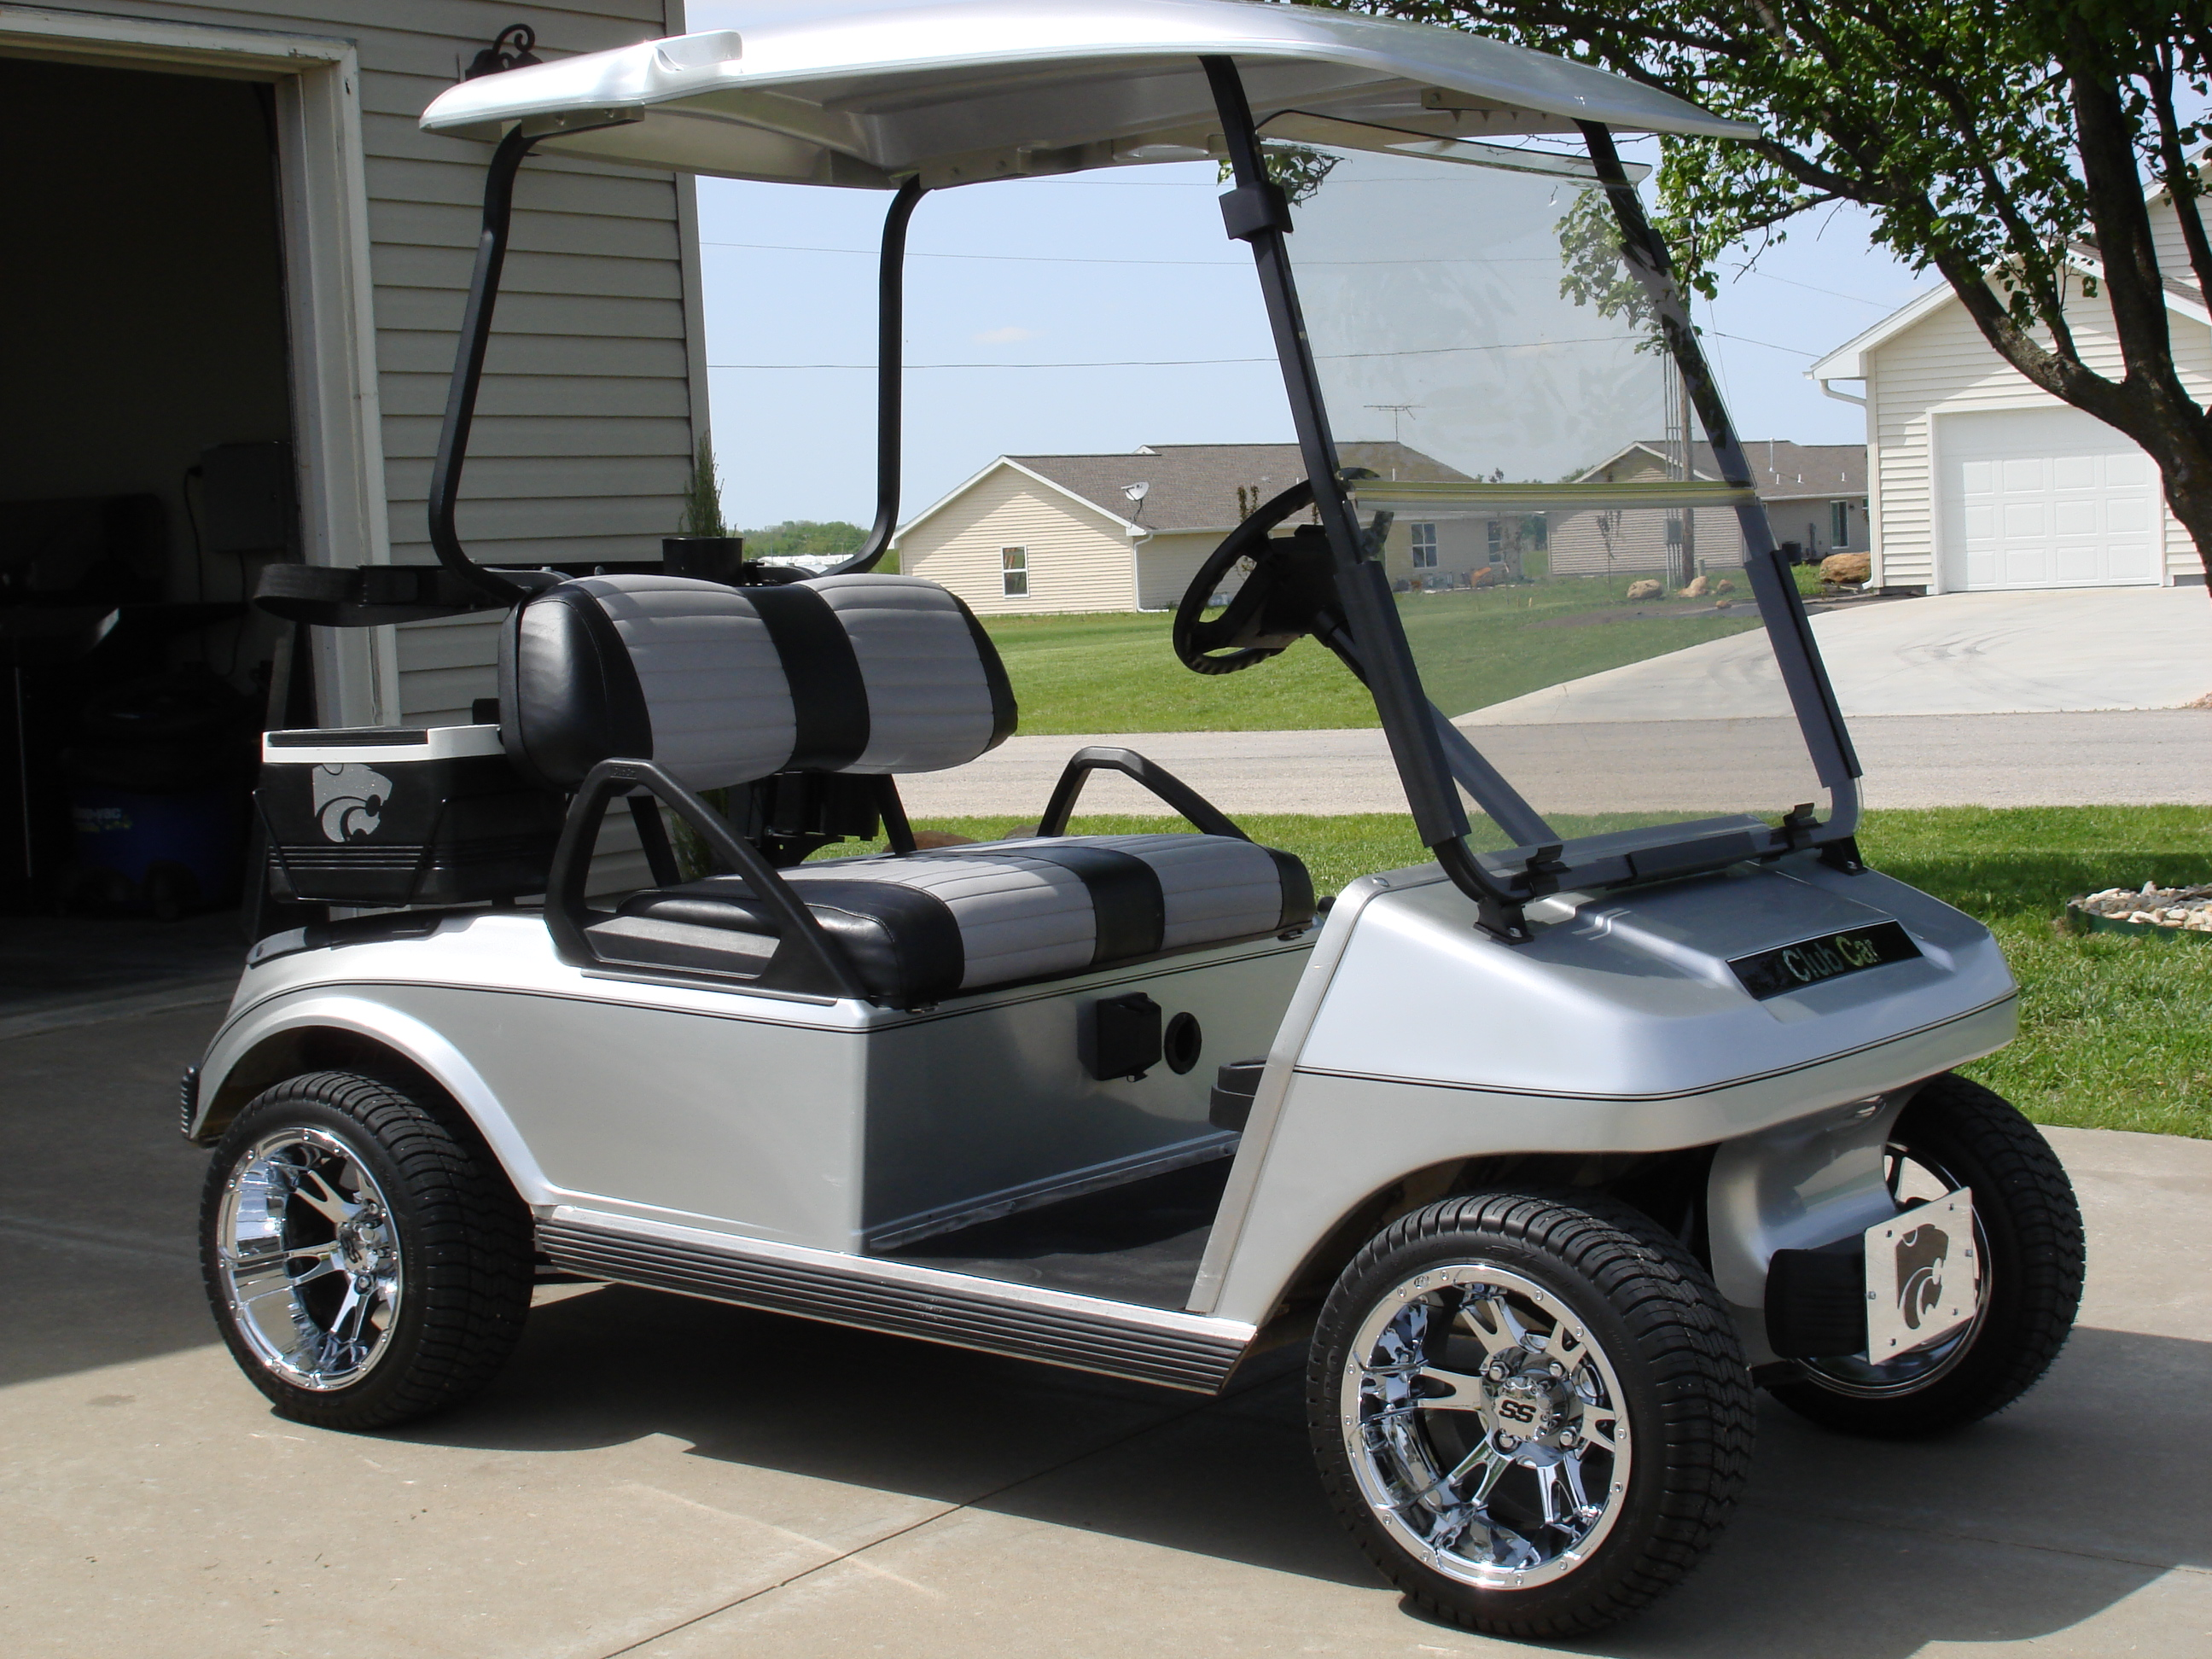 Yamaha Drive Golf Cart Wiring Diagram on